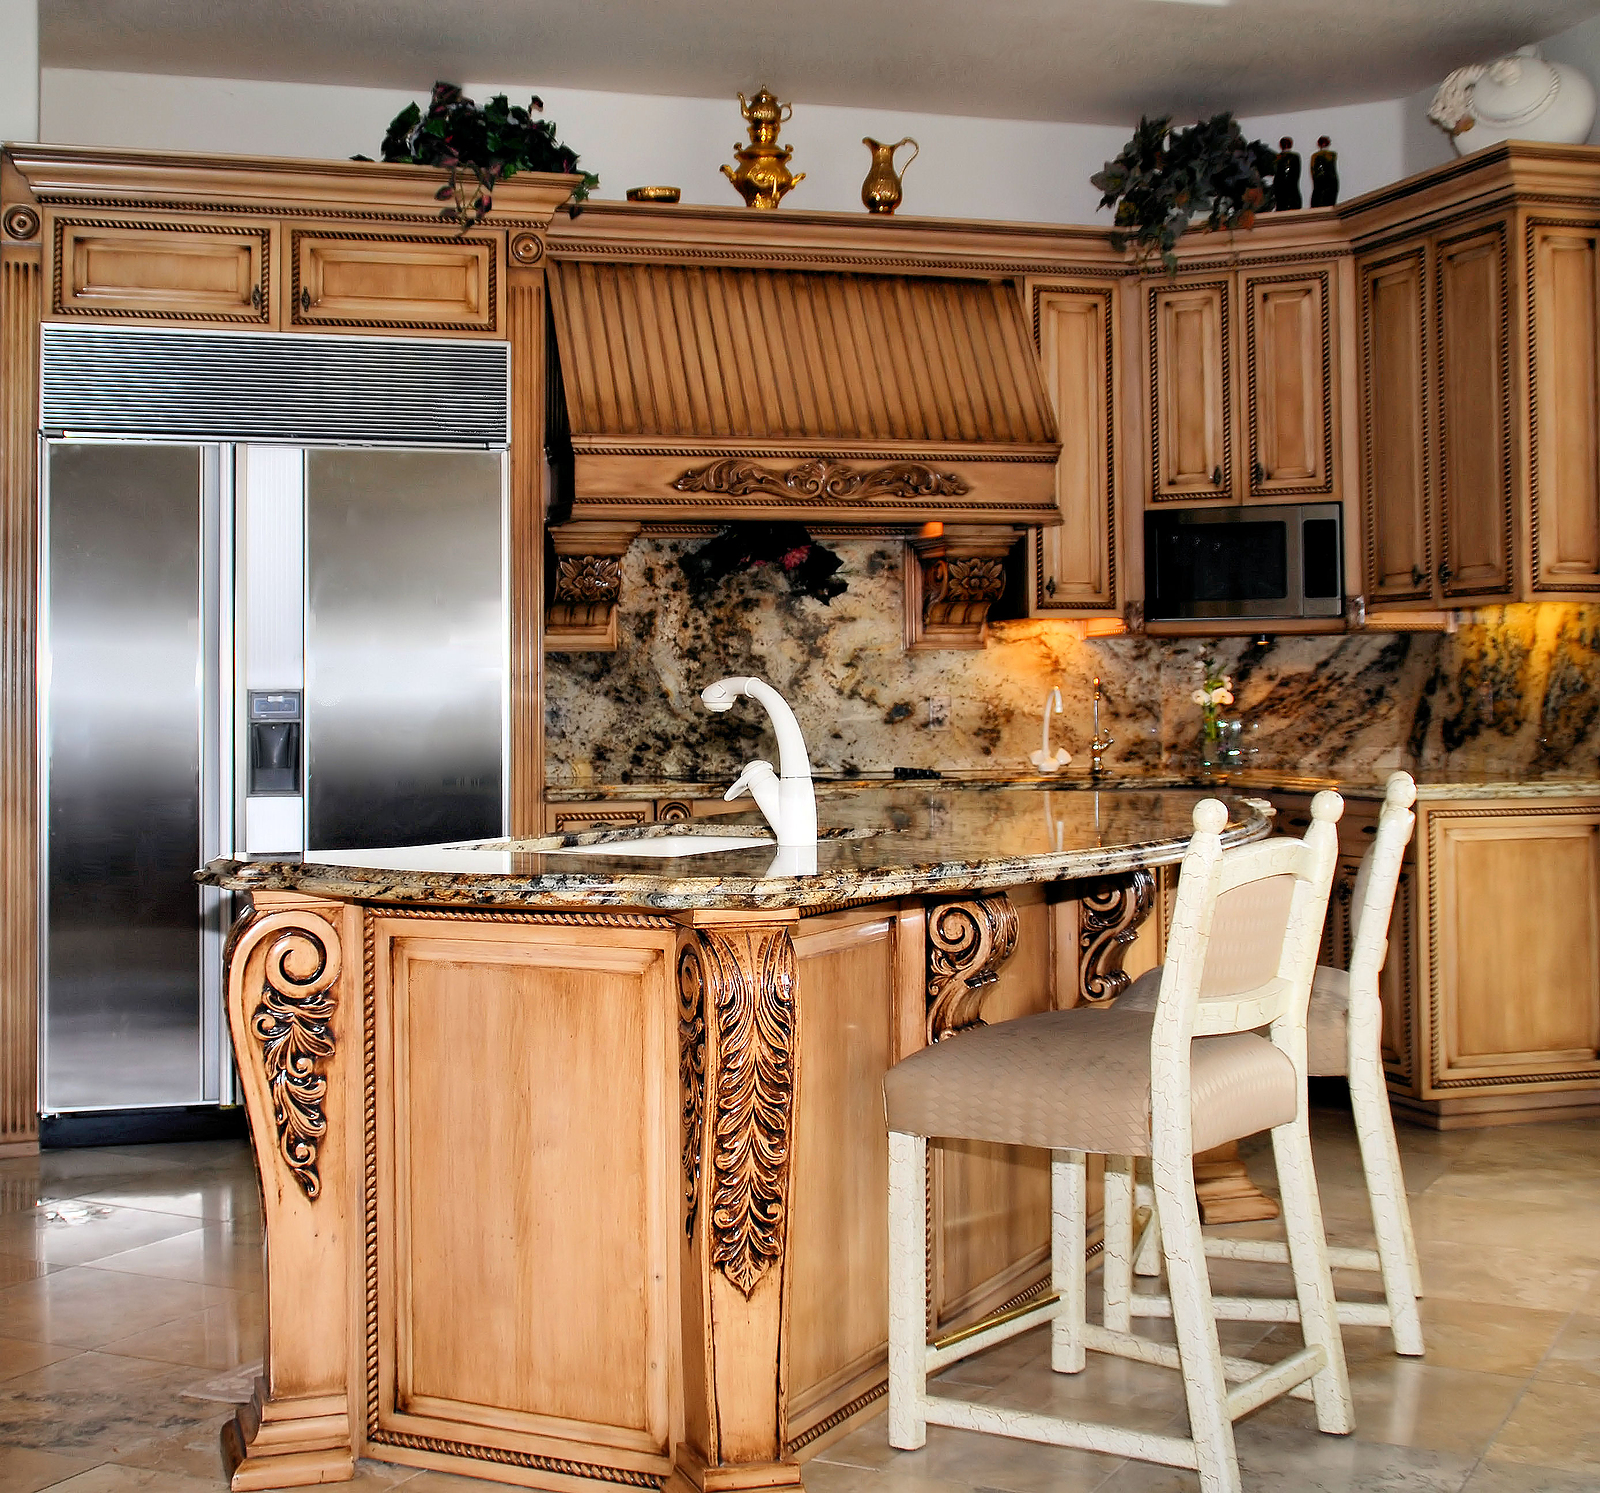 Fresh Look Design Your Own Kitchen Carved Wood Cabinet Island